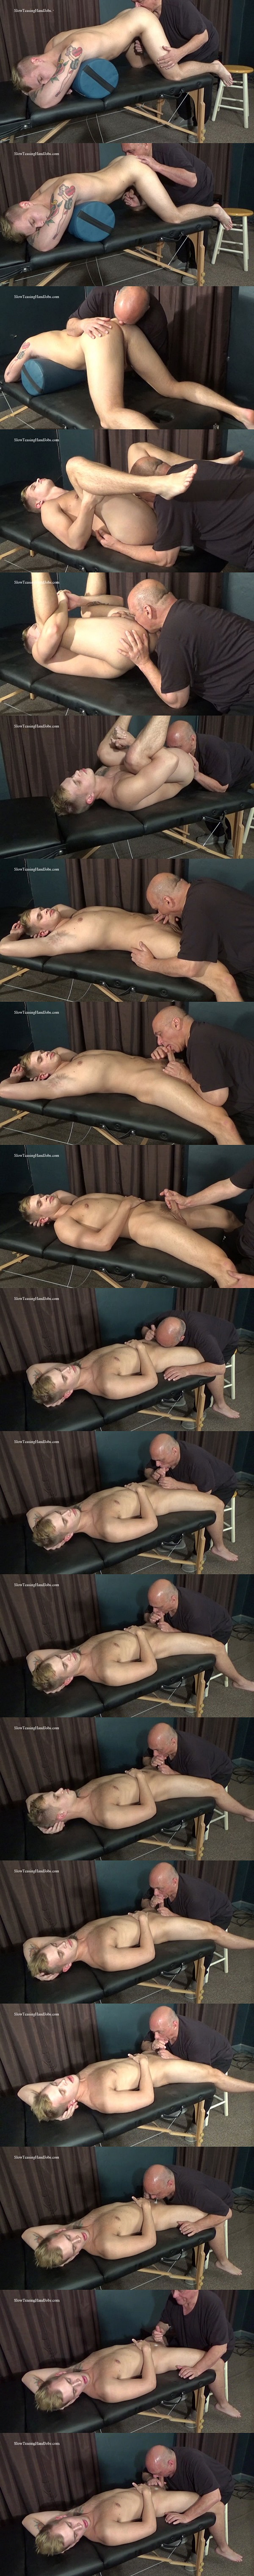 Fit straight jock Hunter (aka Dustin Cross) gets rimmed and sucked by master Rich before Hunter blows his load in Rich's mouth in Hunter Rimmed and Sucked at Slowteasinghandjobs 01